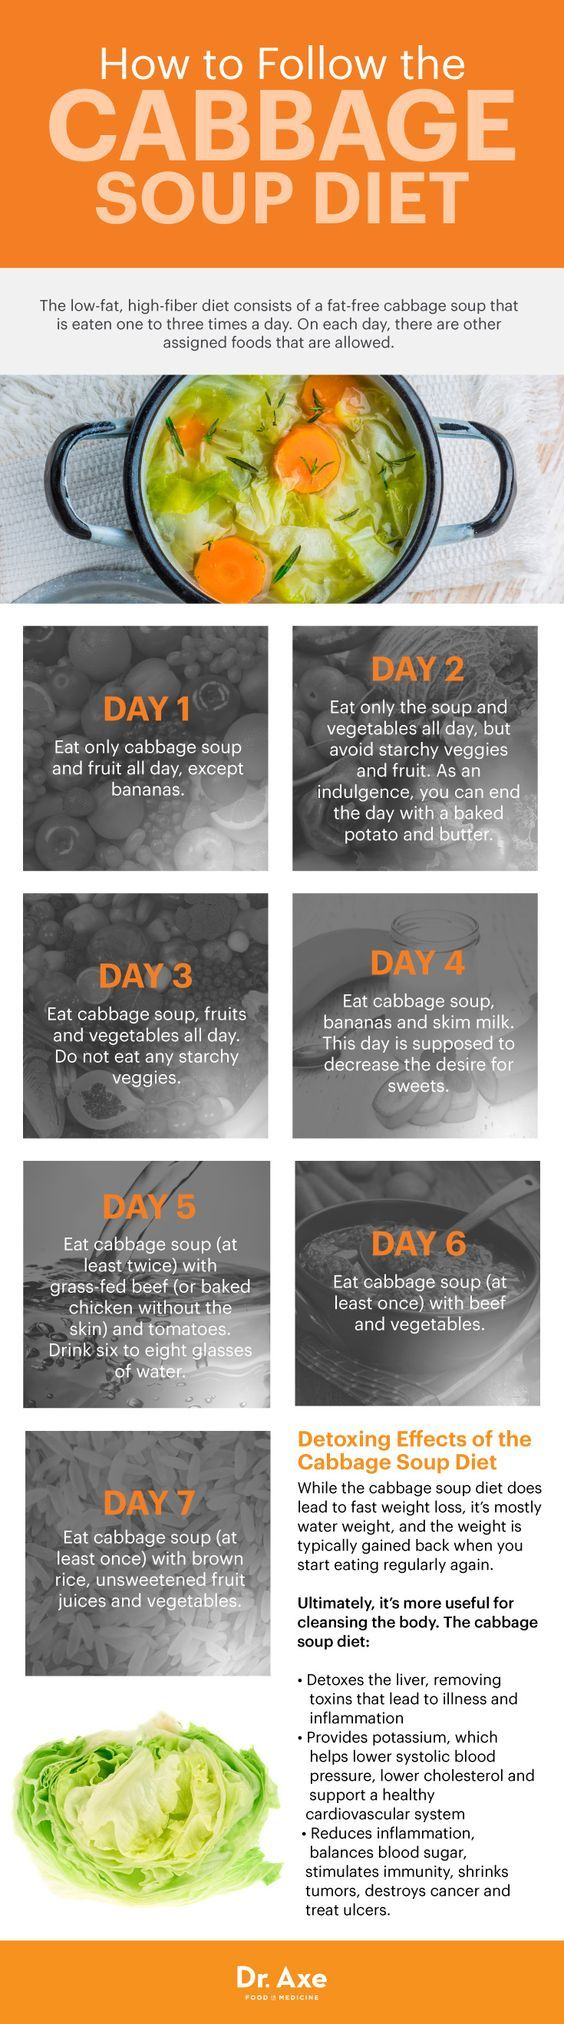 How to follow the cabbage soup diet - Dr. Axe www.draxe.com #health #holistic #n...